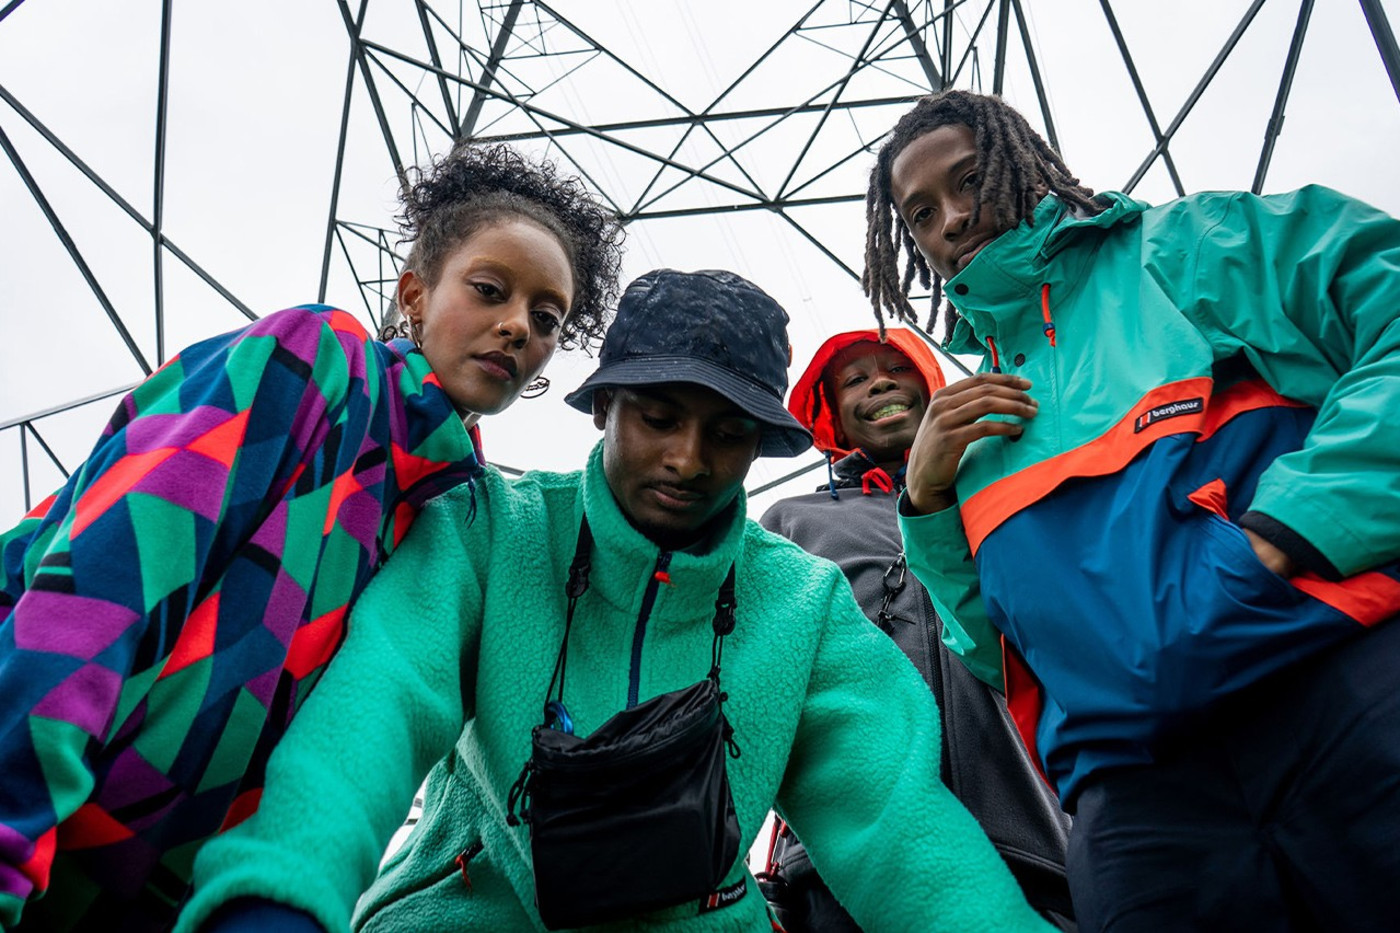 berghaus-dean-street-fall-winter-2020-flock-together